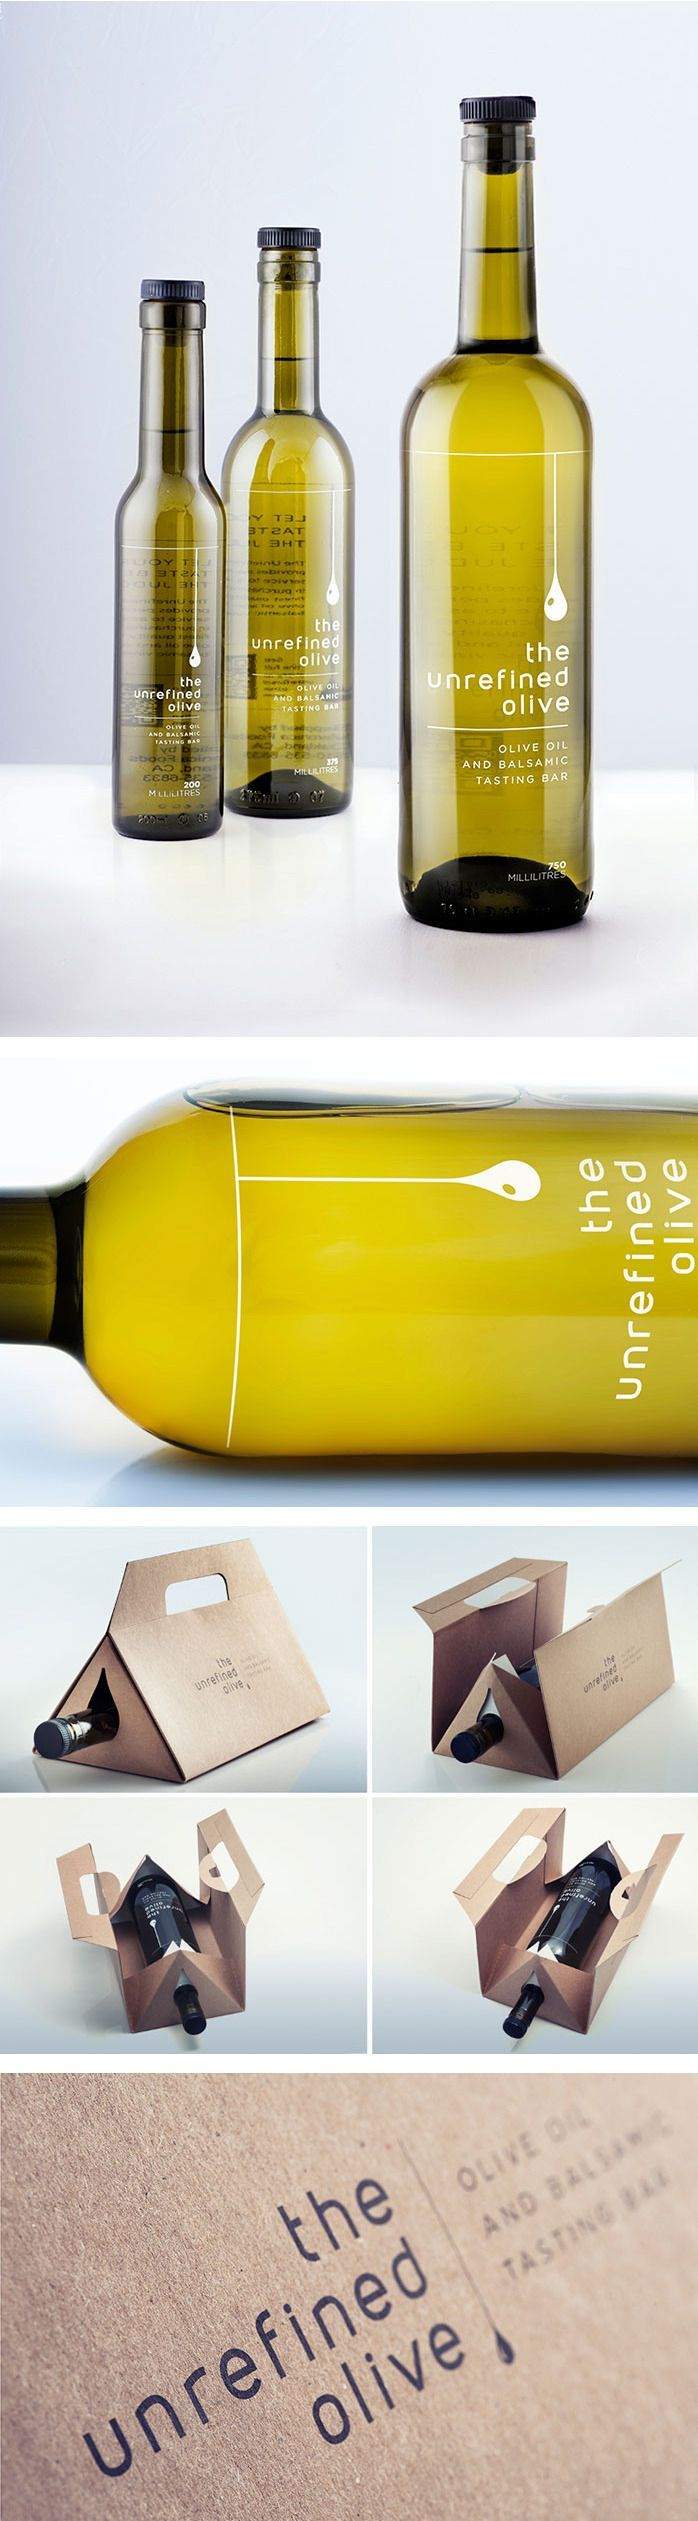 The Unrefined Olive Oil